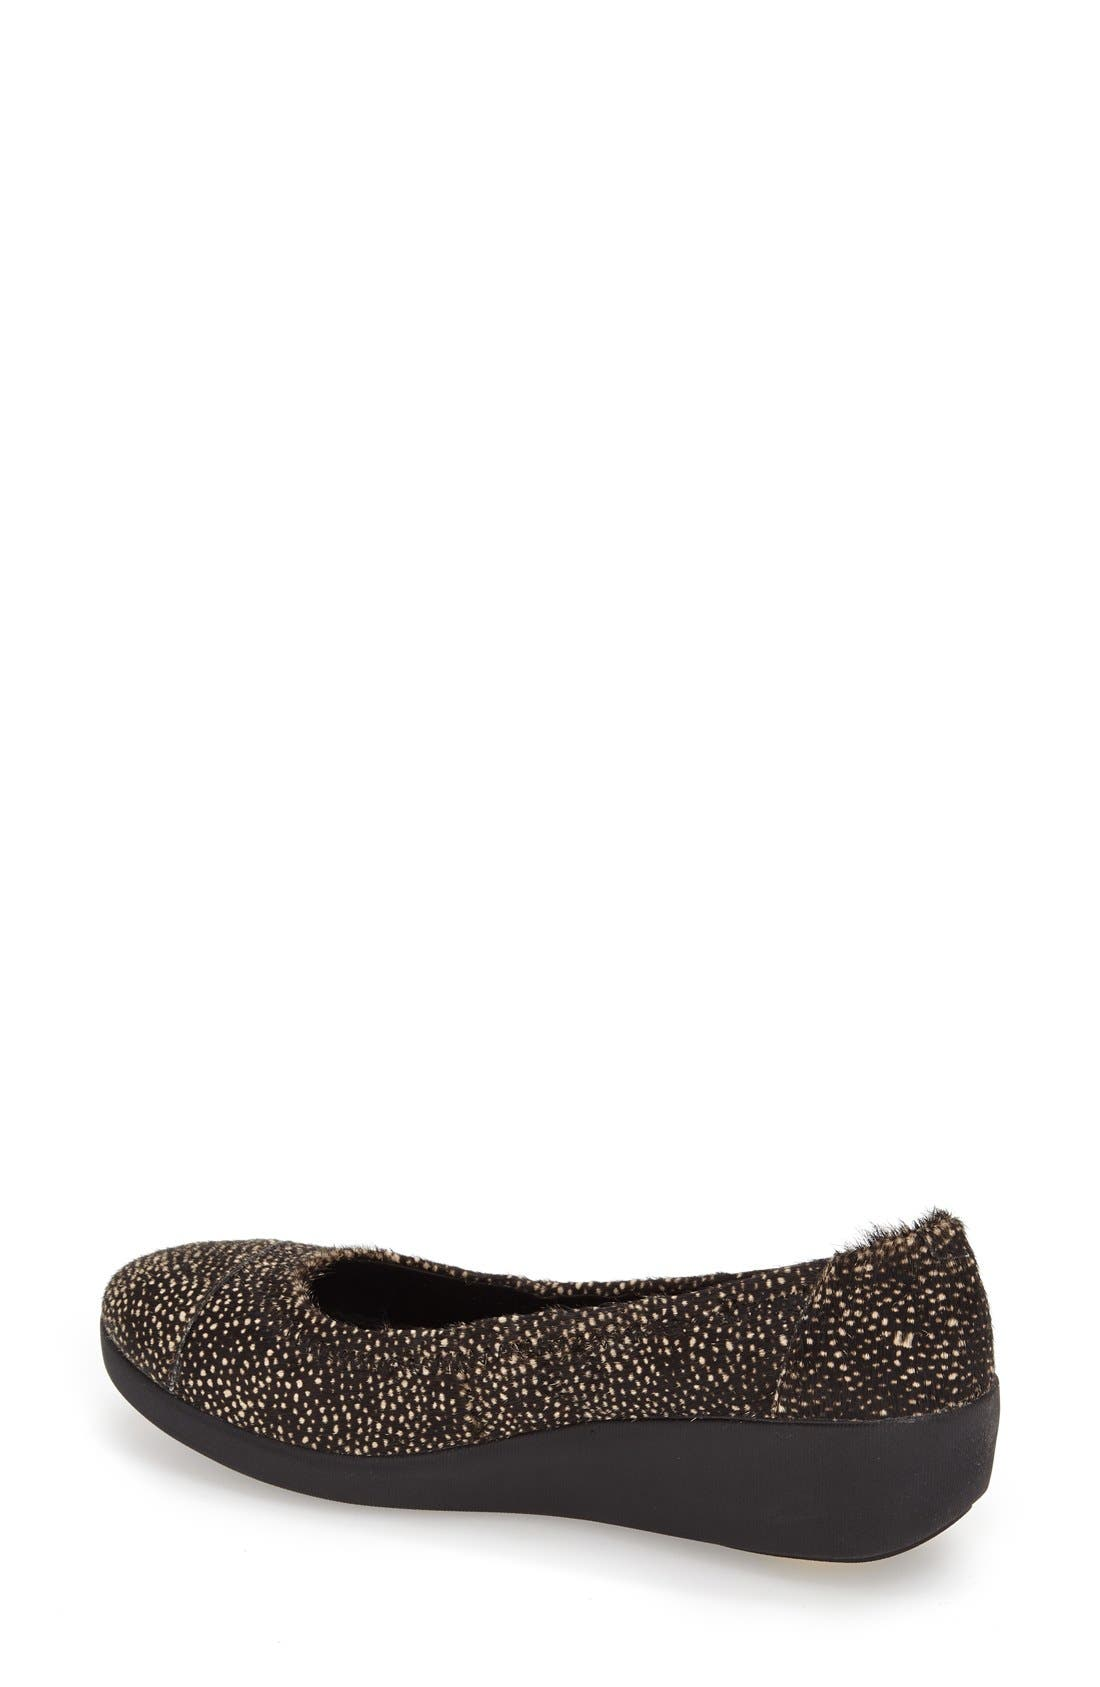 FITFLOP,                              'F-Pop' Leather Ballerina Flat,                             Alternate thumbnail 4, color,                             017